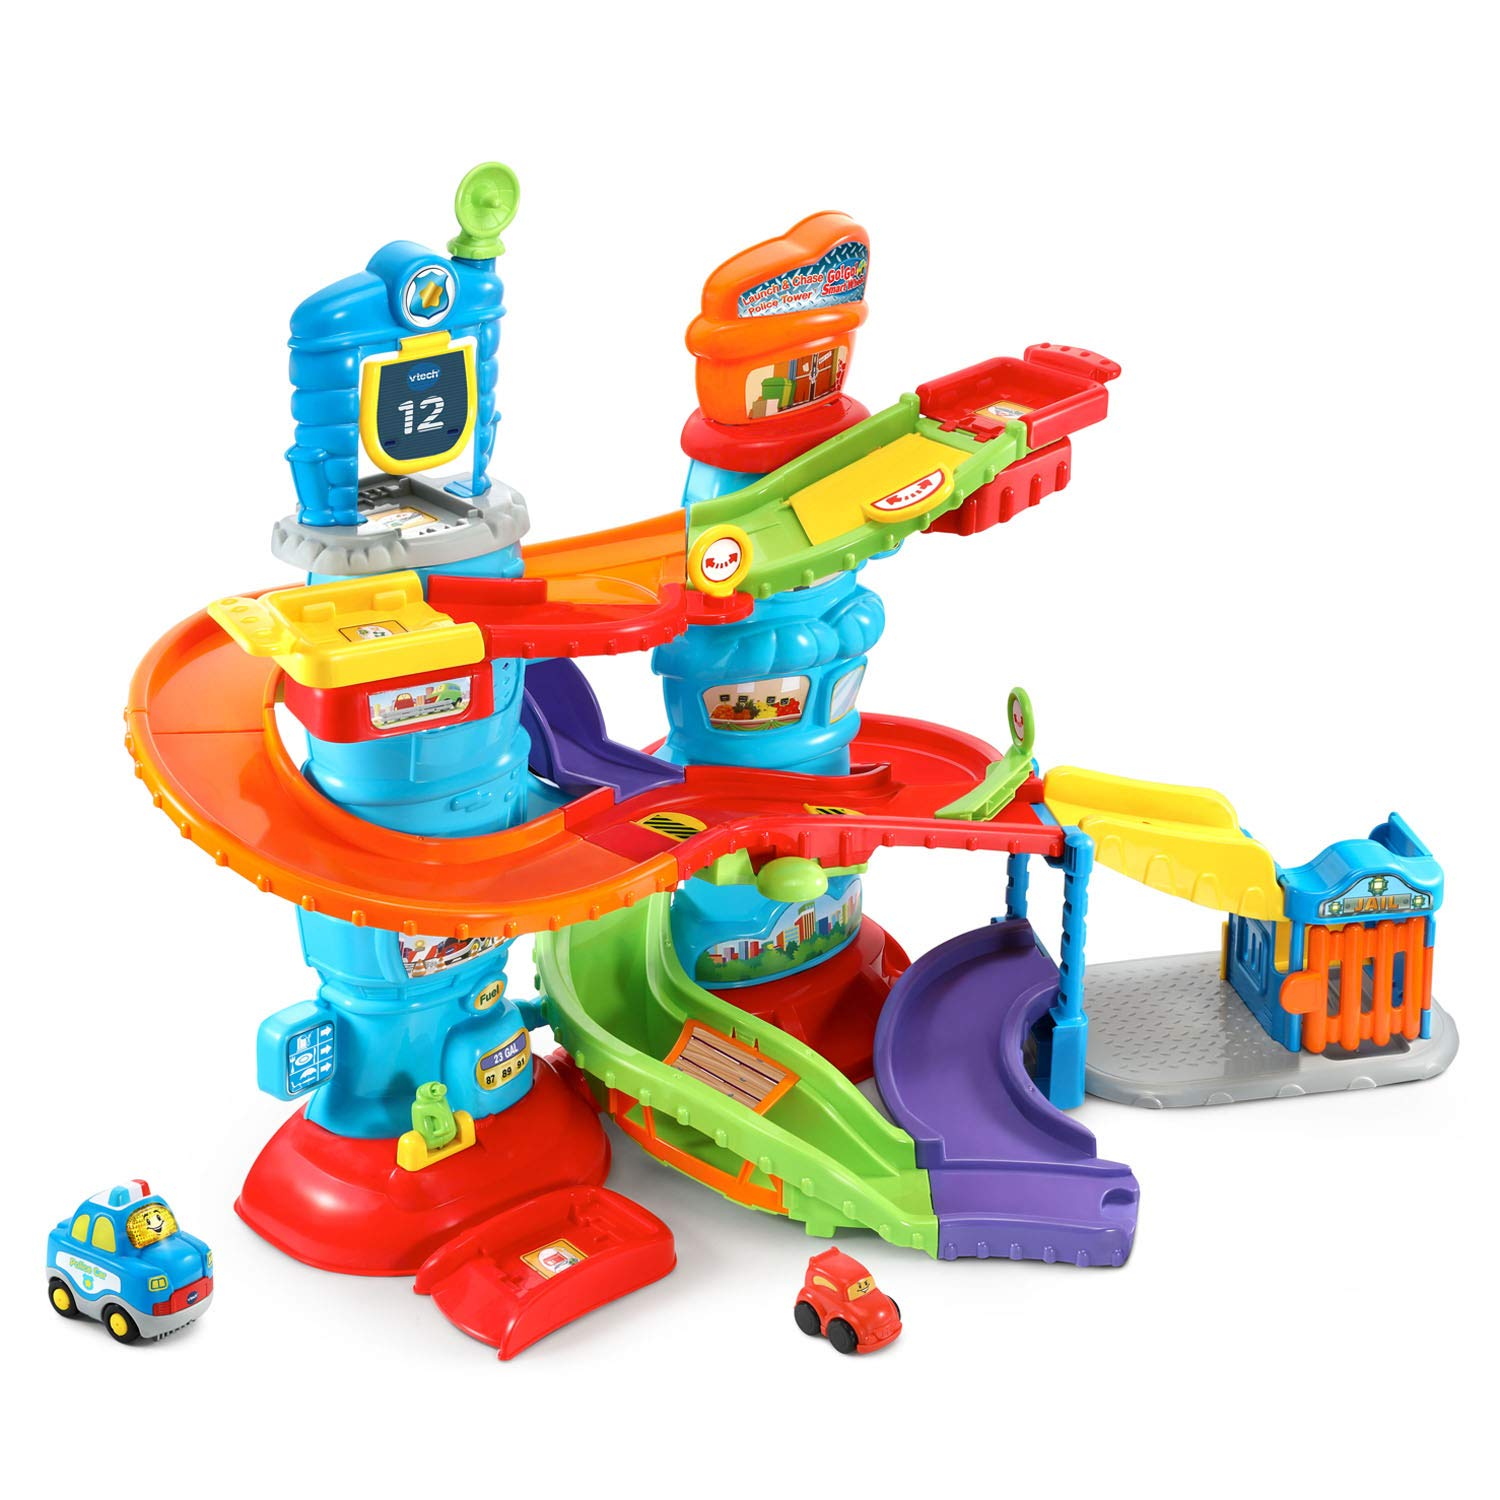 VTech Go! Go! Smart Wheels Launch and Chase Police Tower 80-512900